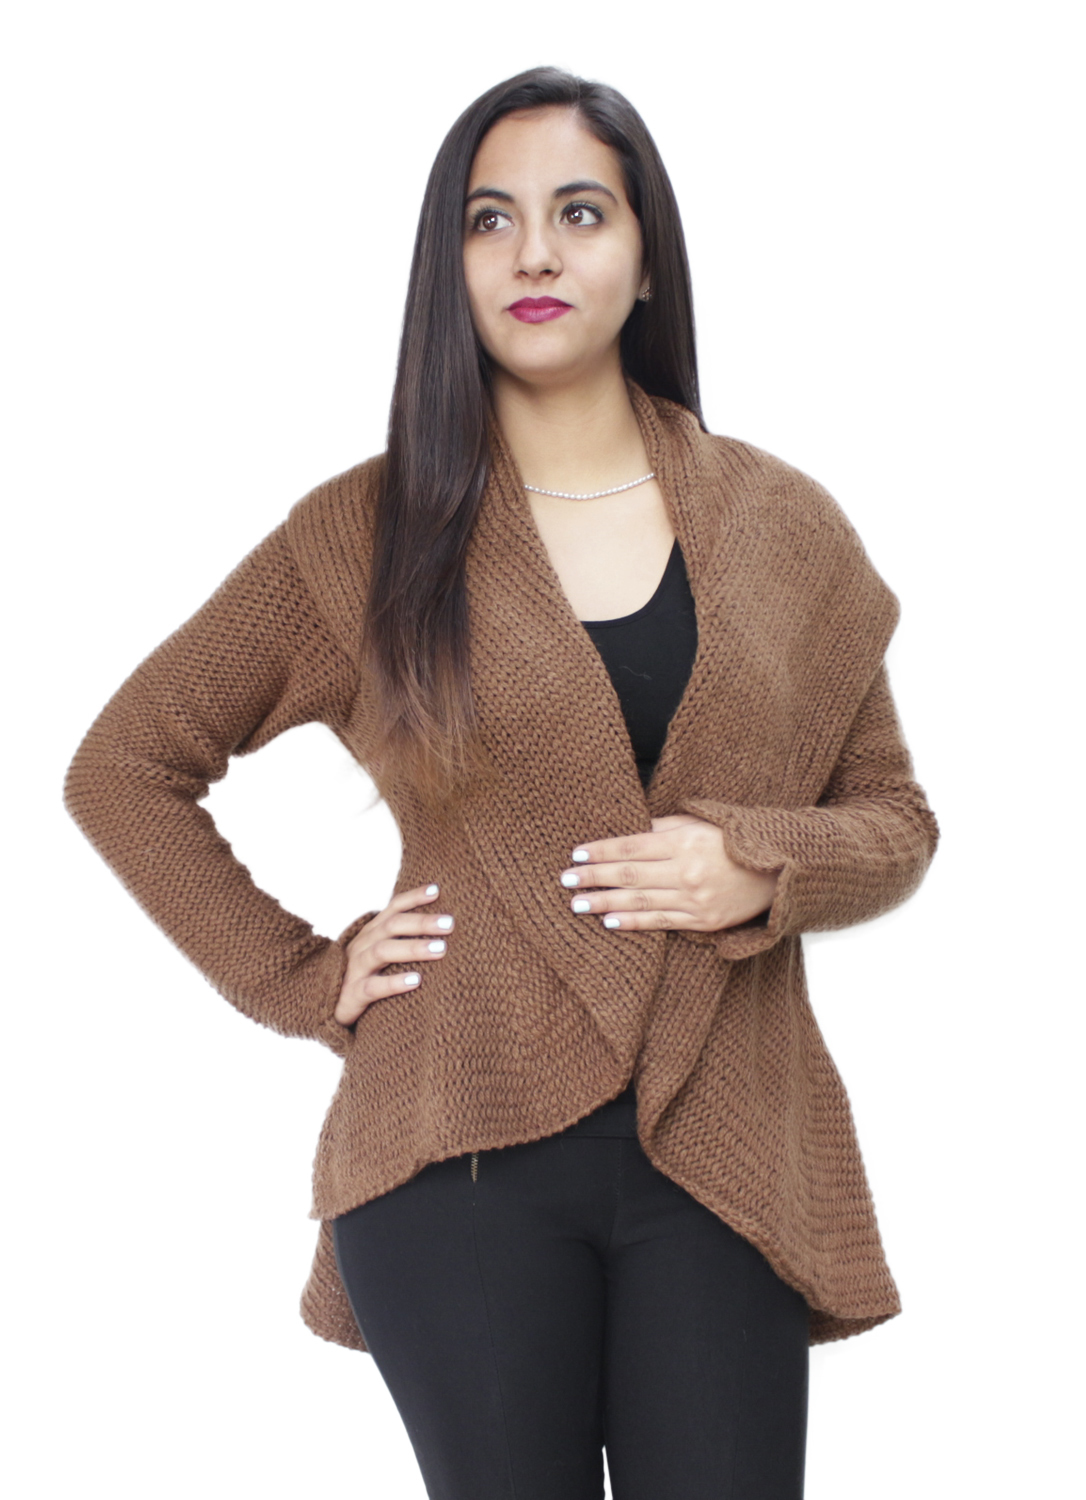 Find great deals on eBay for Sweater Pants in Women's Pants, Clothing, Shoes and Accessories. Shop with confidence.